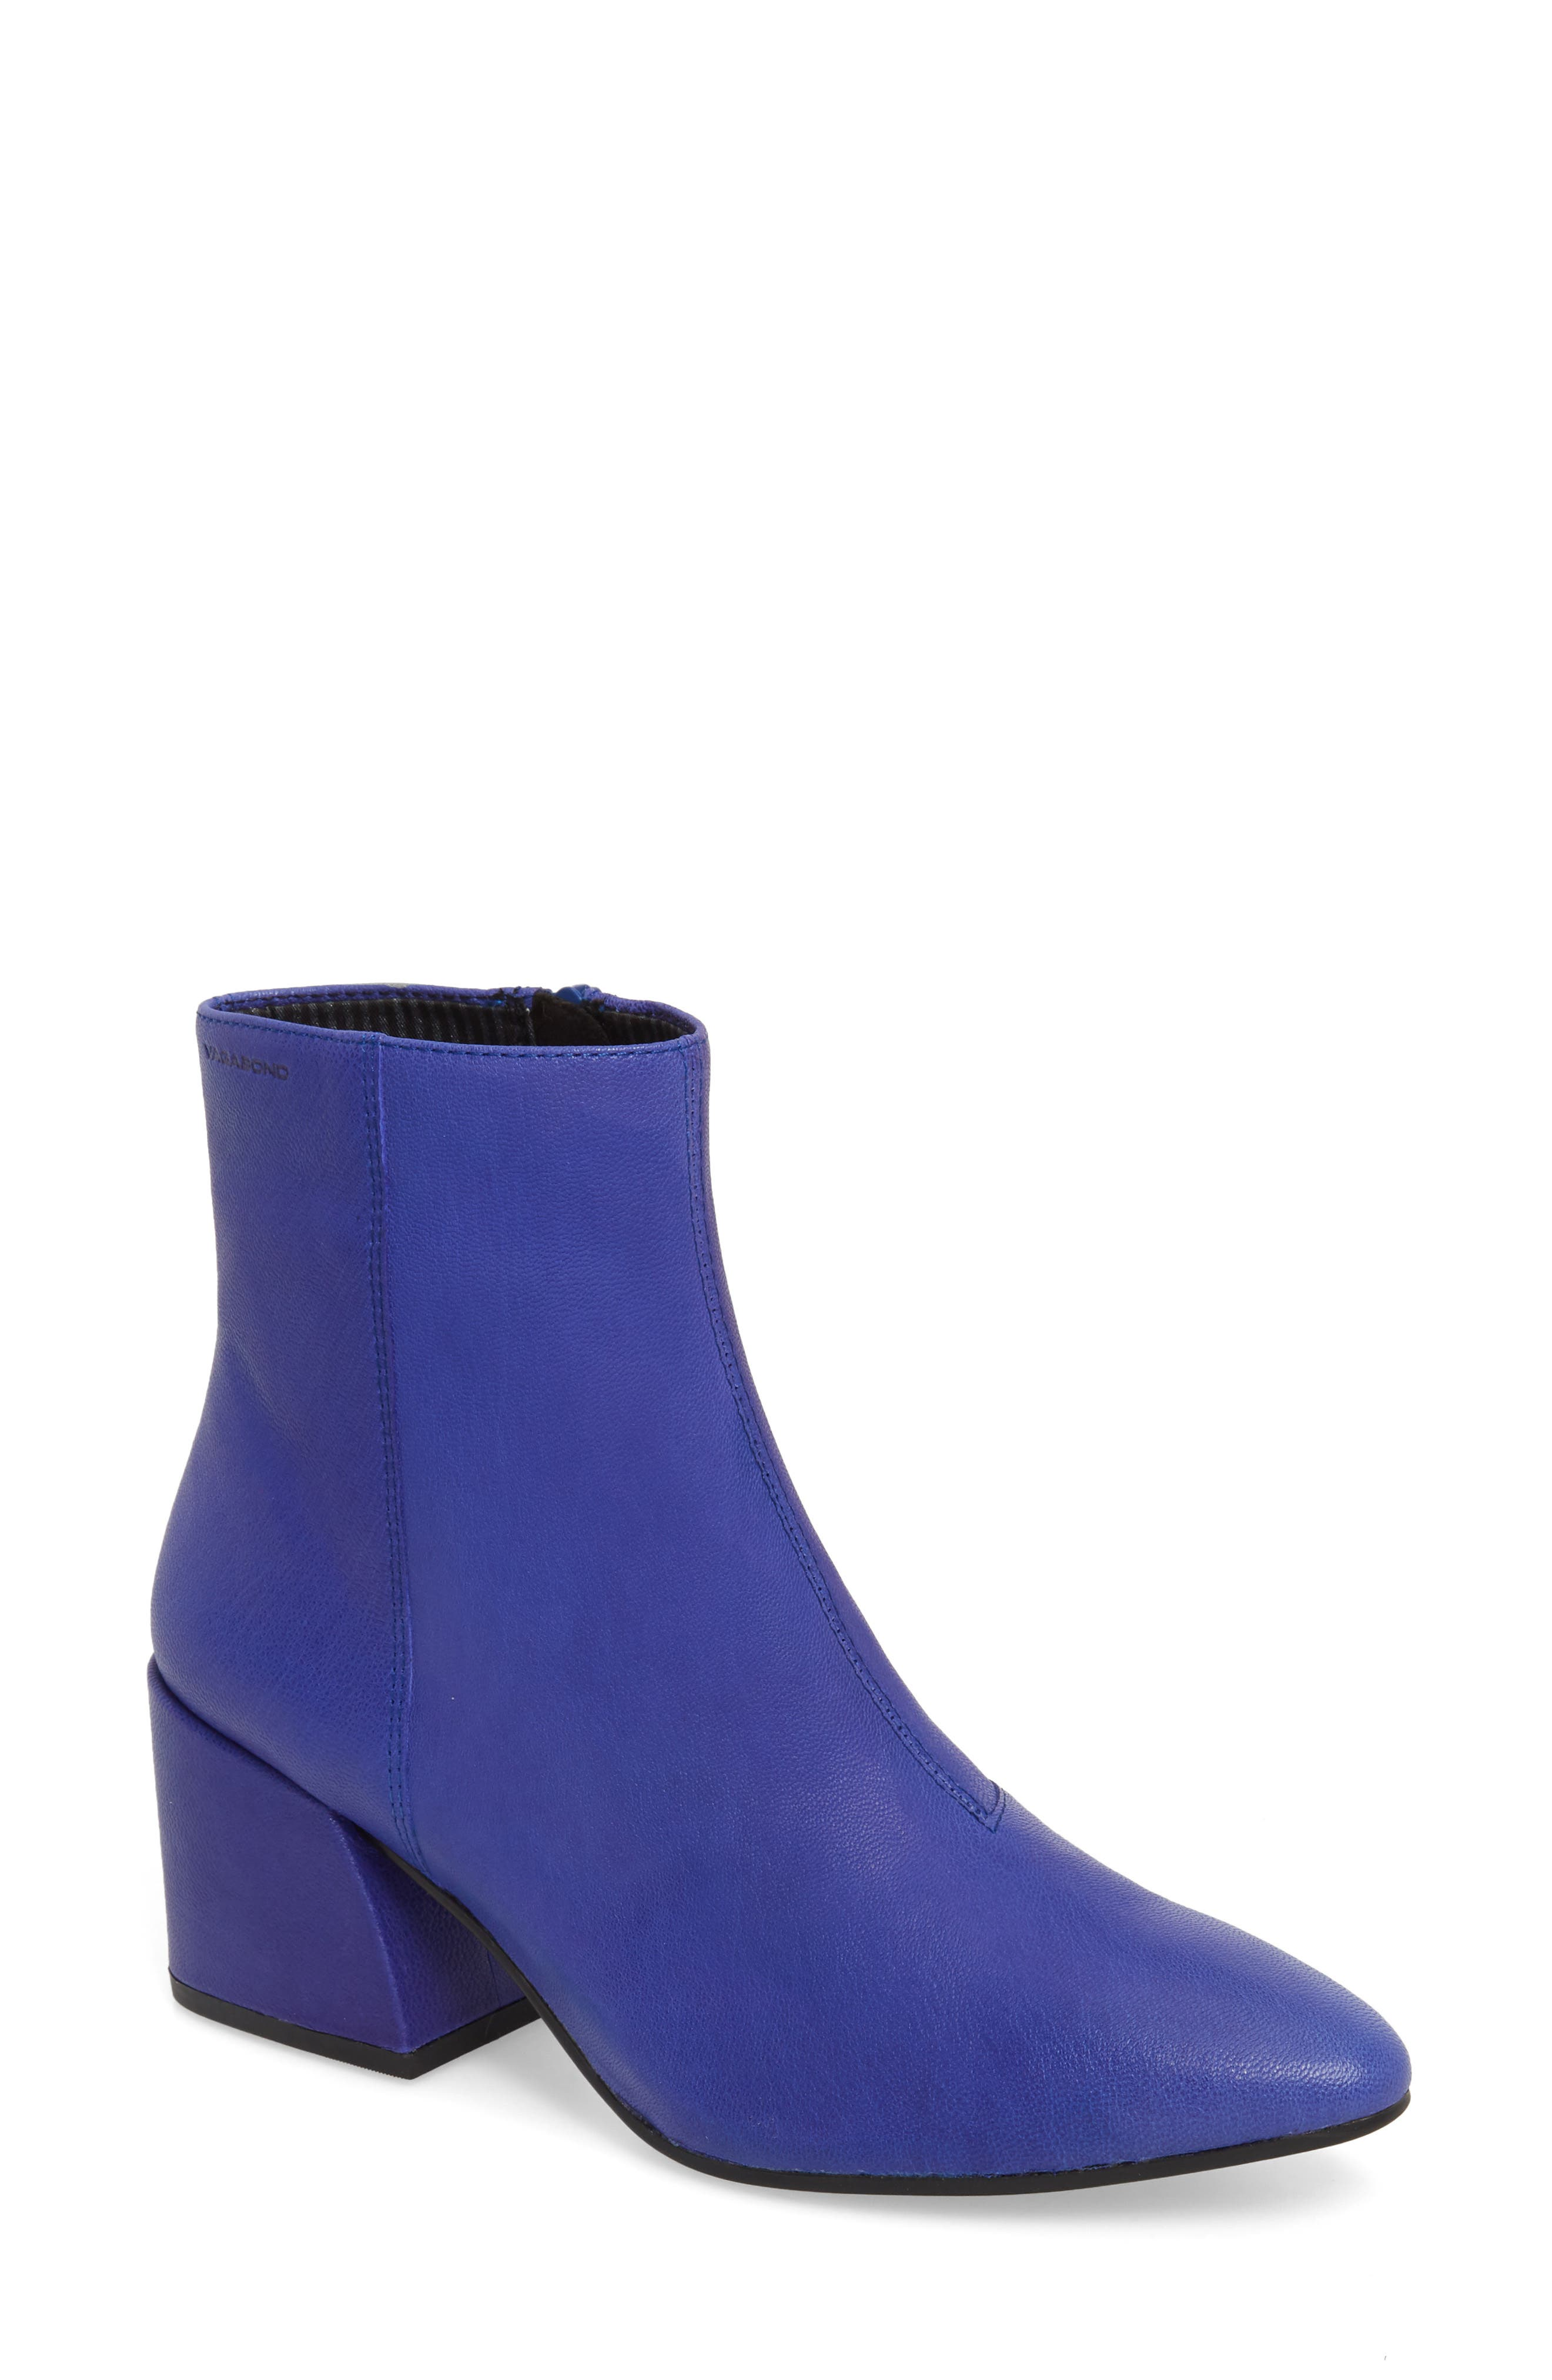 Shoemakers Olivia Bootie in Super Blue Leather